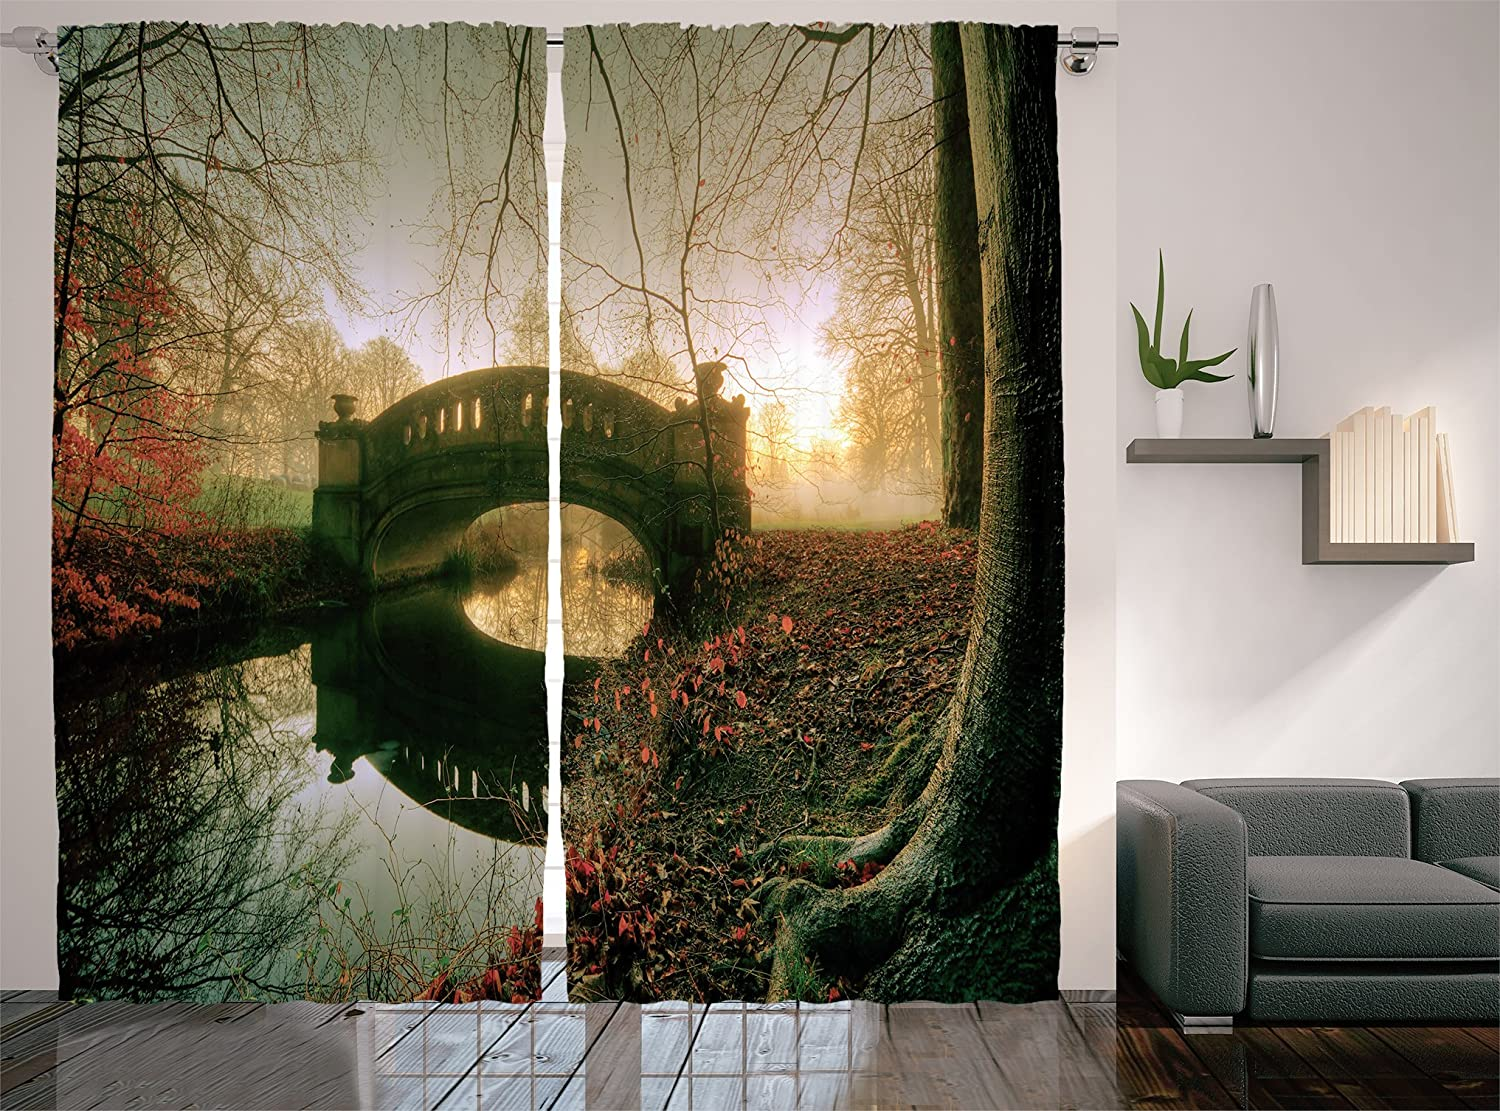 "Ambesonne Landscape Curtains, Mystical Stone Bridge on Blurred River with Foggy Autumn Forest, Living Room Bedroom Window Drapes 2 Panel Set, 108"" X 84"", Paprika Dark Green Peach"